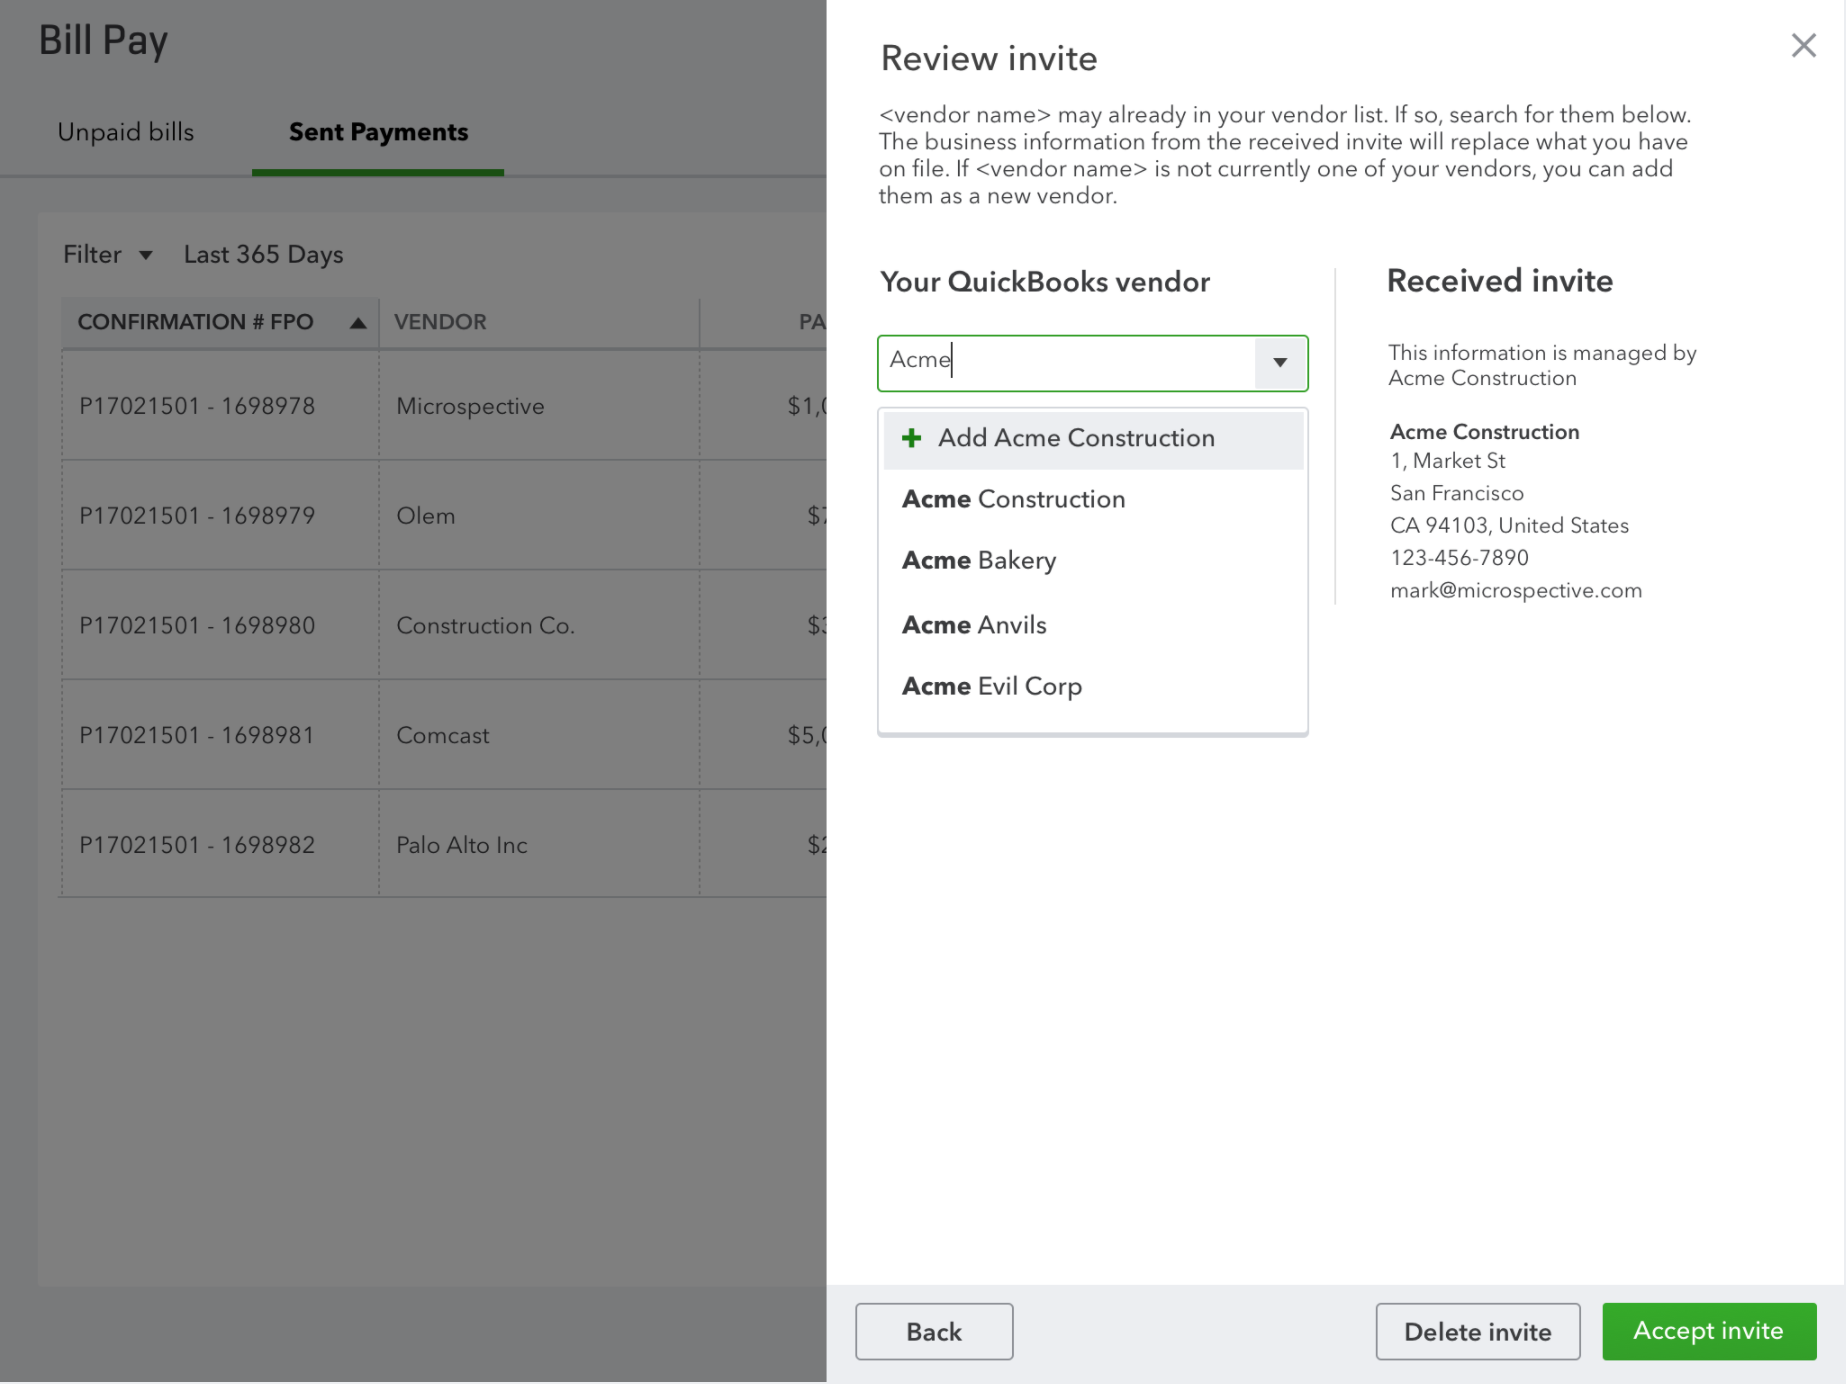 Review vendor invites in QuickBooks Online